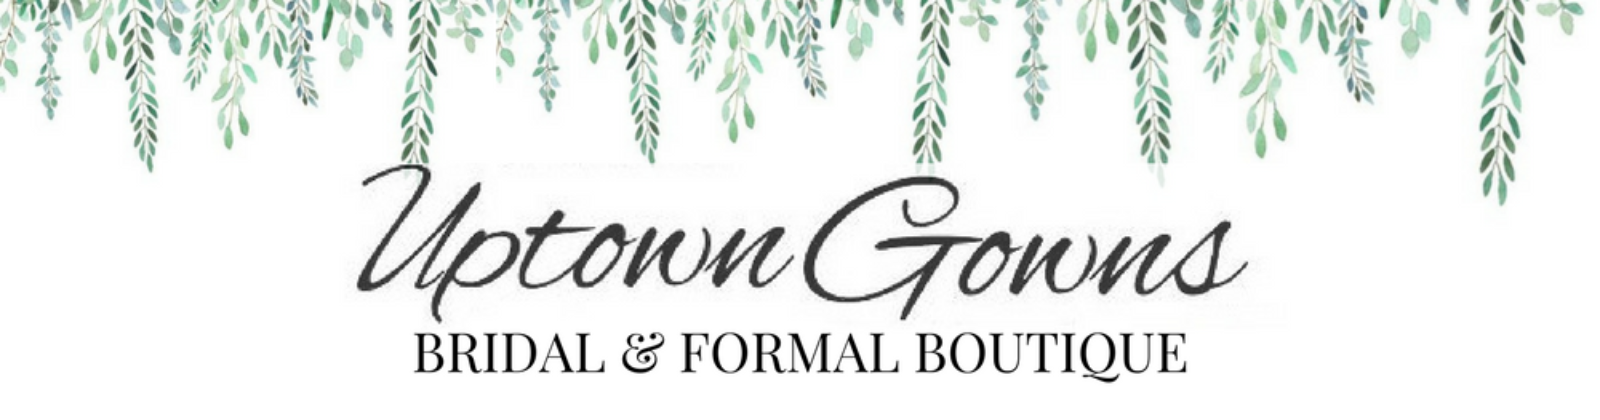 cropped-Bridal-Formal-Boutique-1.png